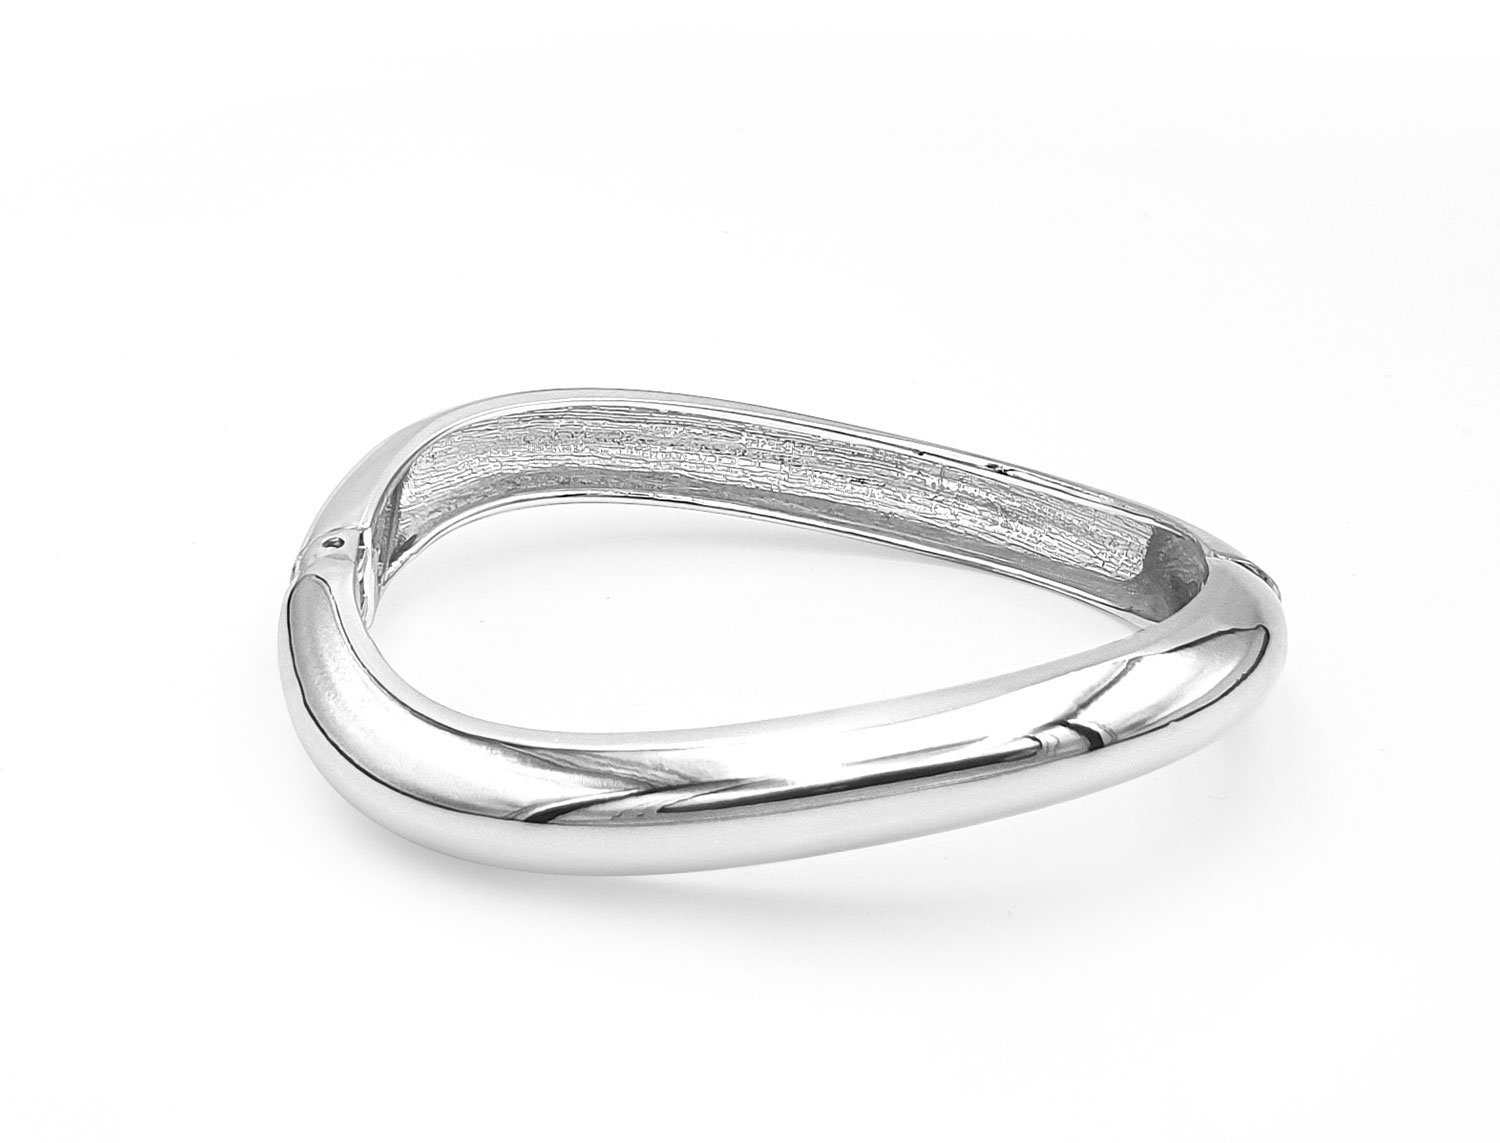 Open Spring Wave Bracelet Silver Plated - Adema